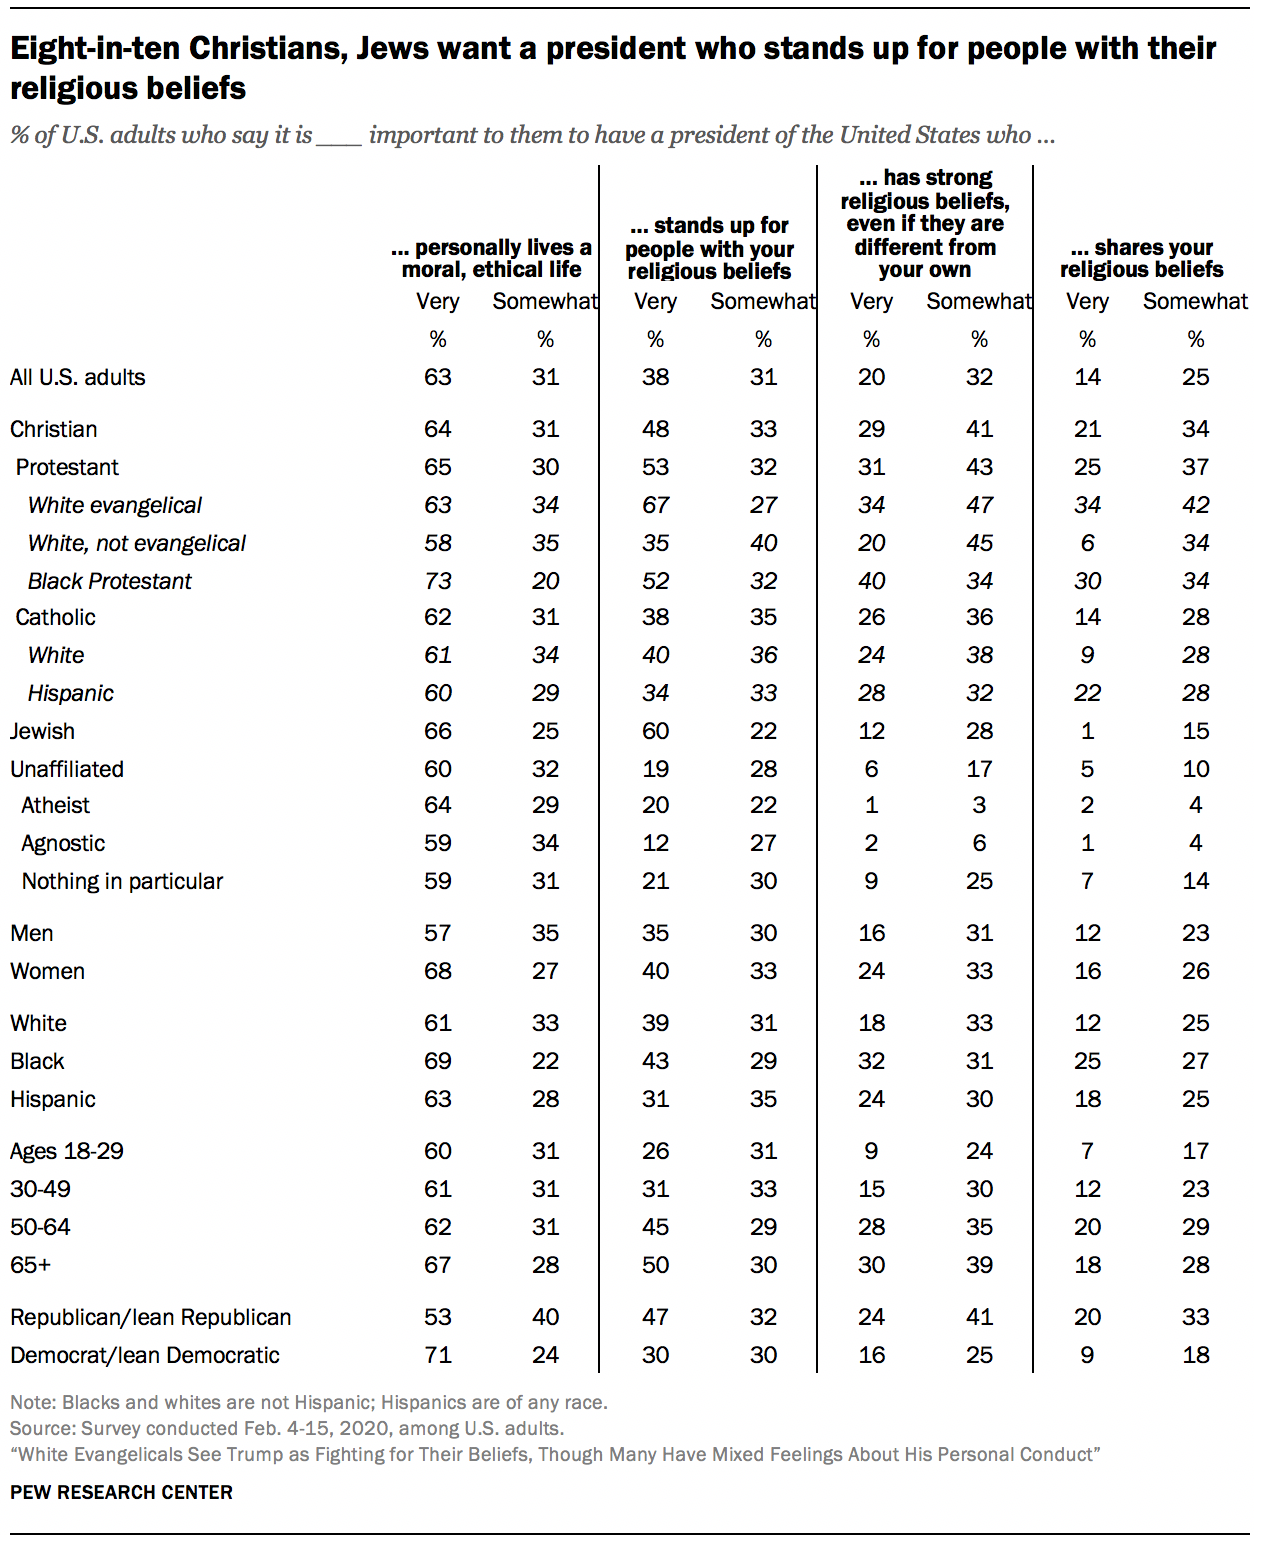 Eight-in-ten Christians, Jews want a president who stands up for people with their religious beliefs